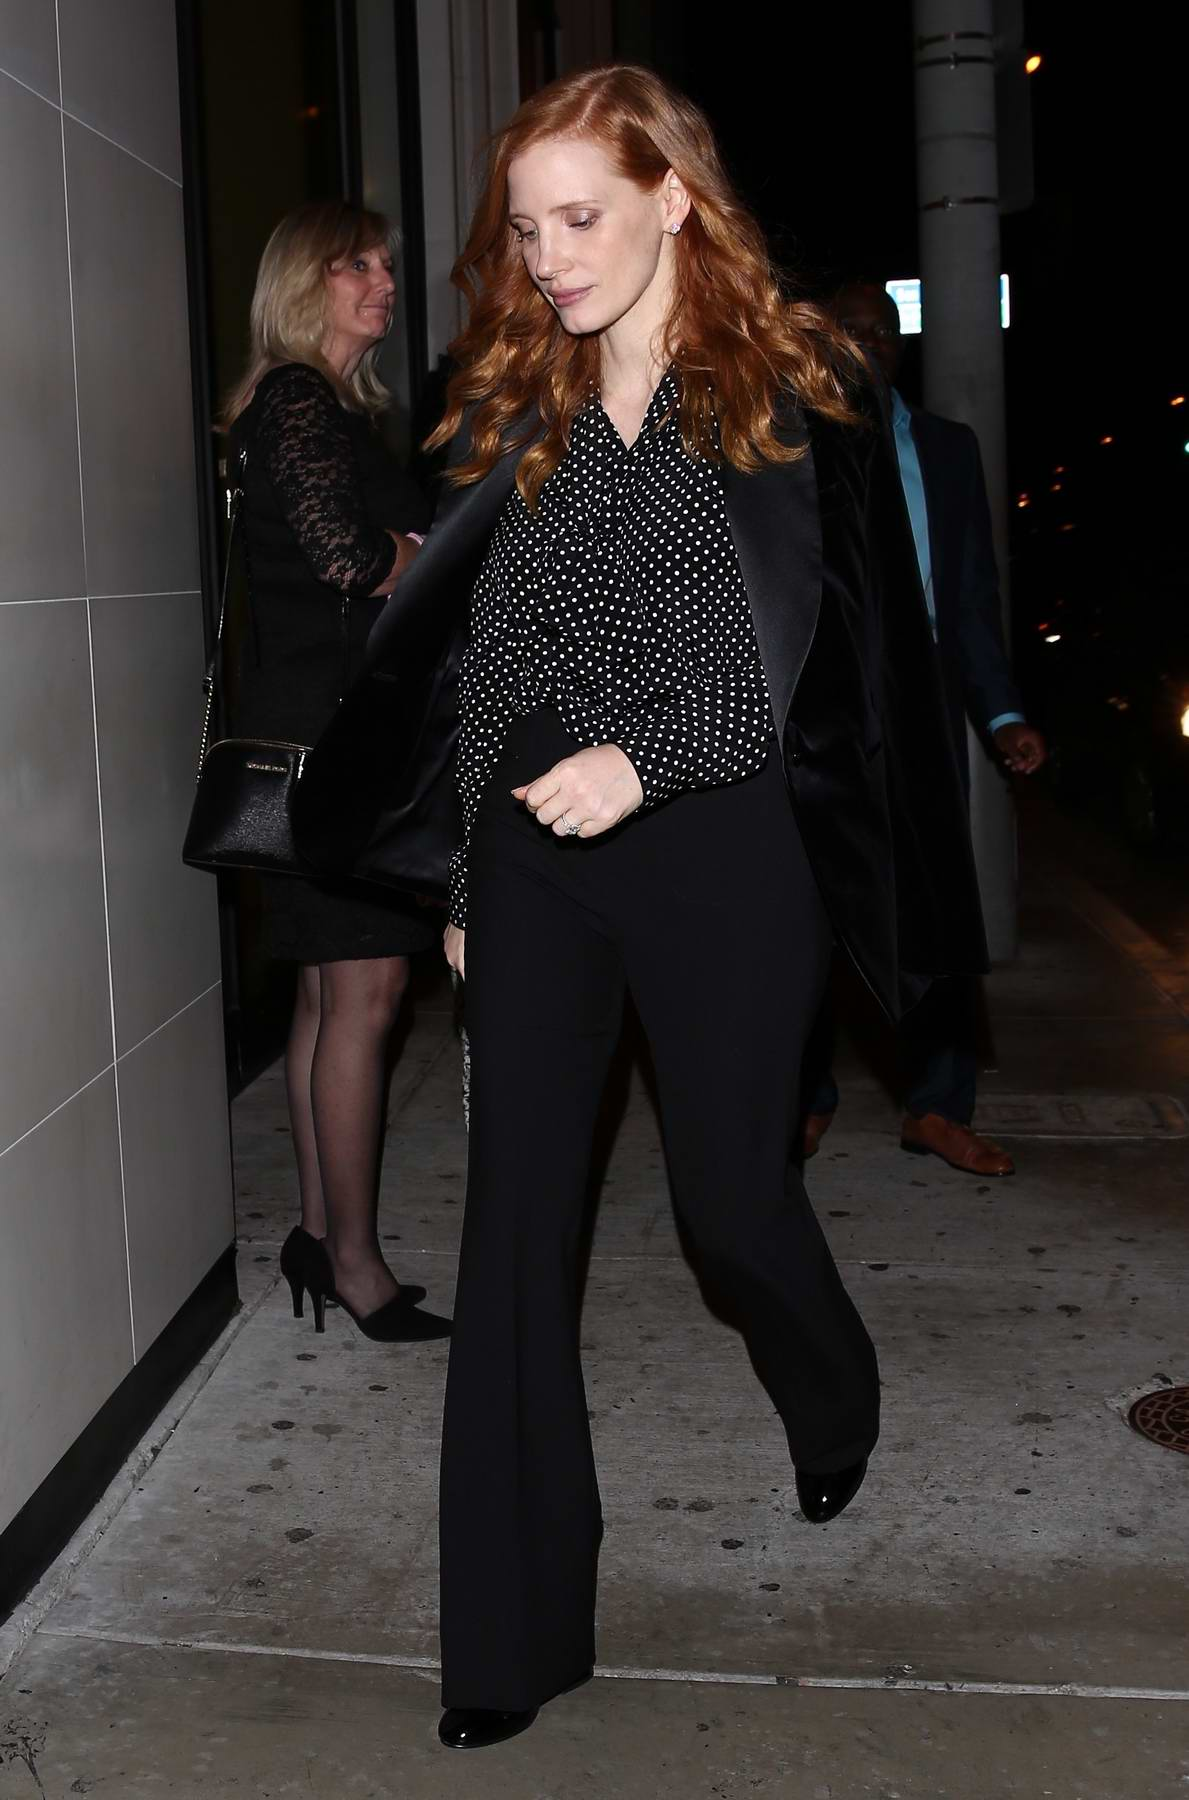 Jessica Chastain and husband Gian Luca Passi leaves after dinner at Catch in West Hollywood, Los Angeles